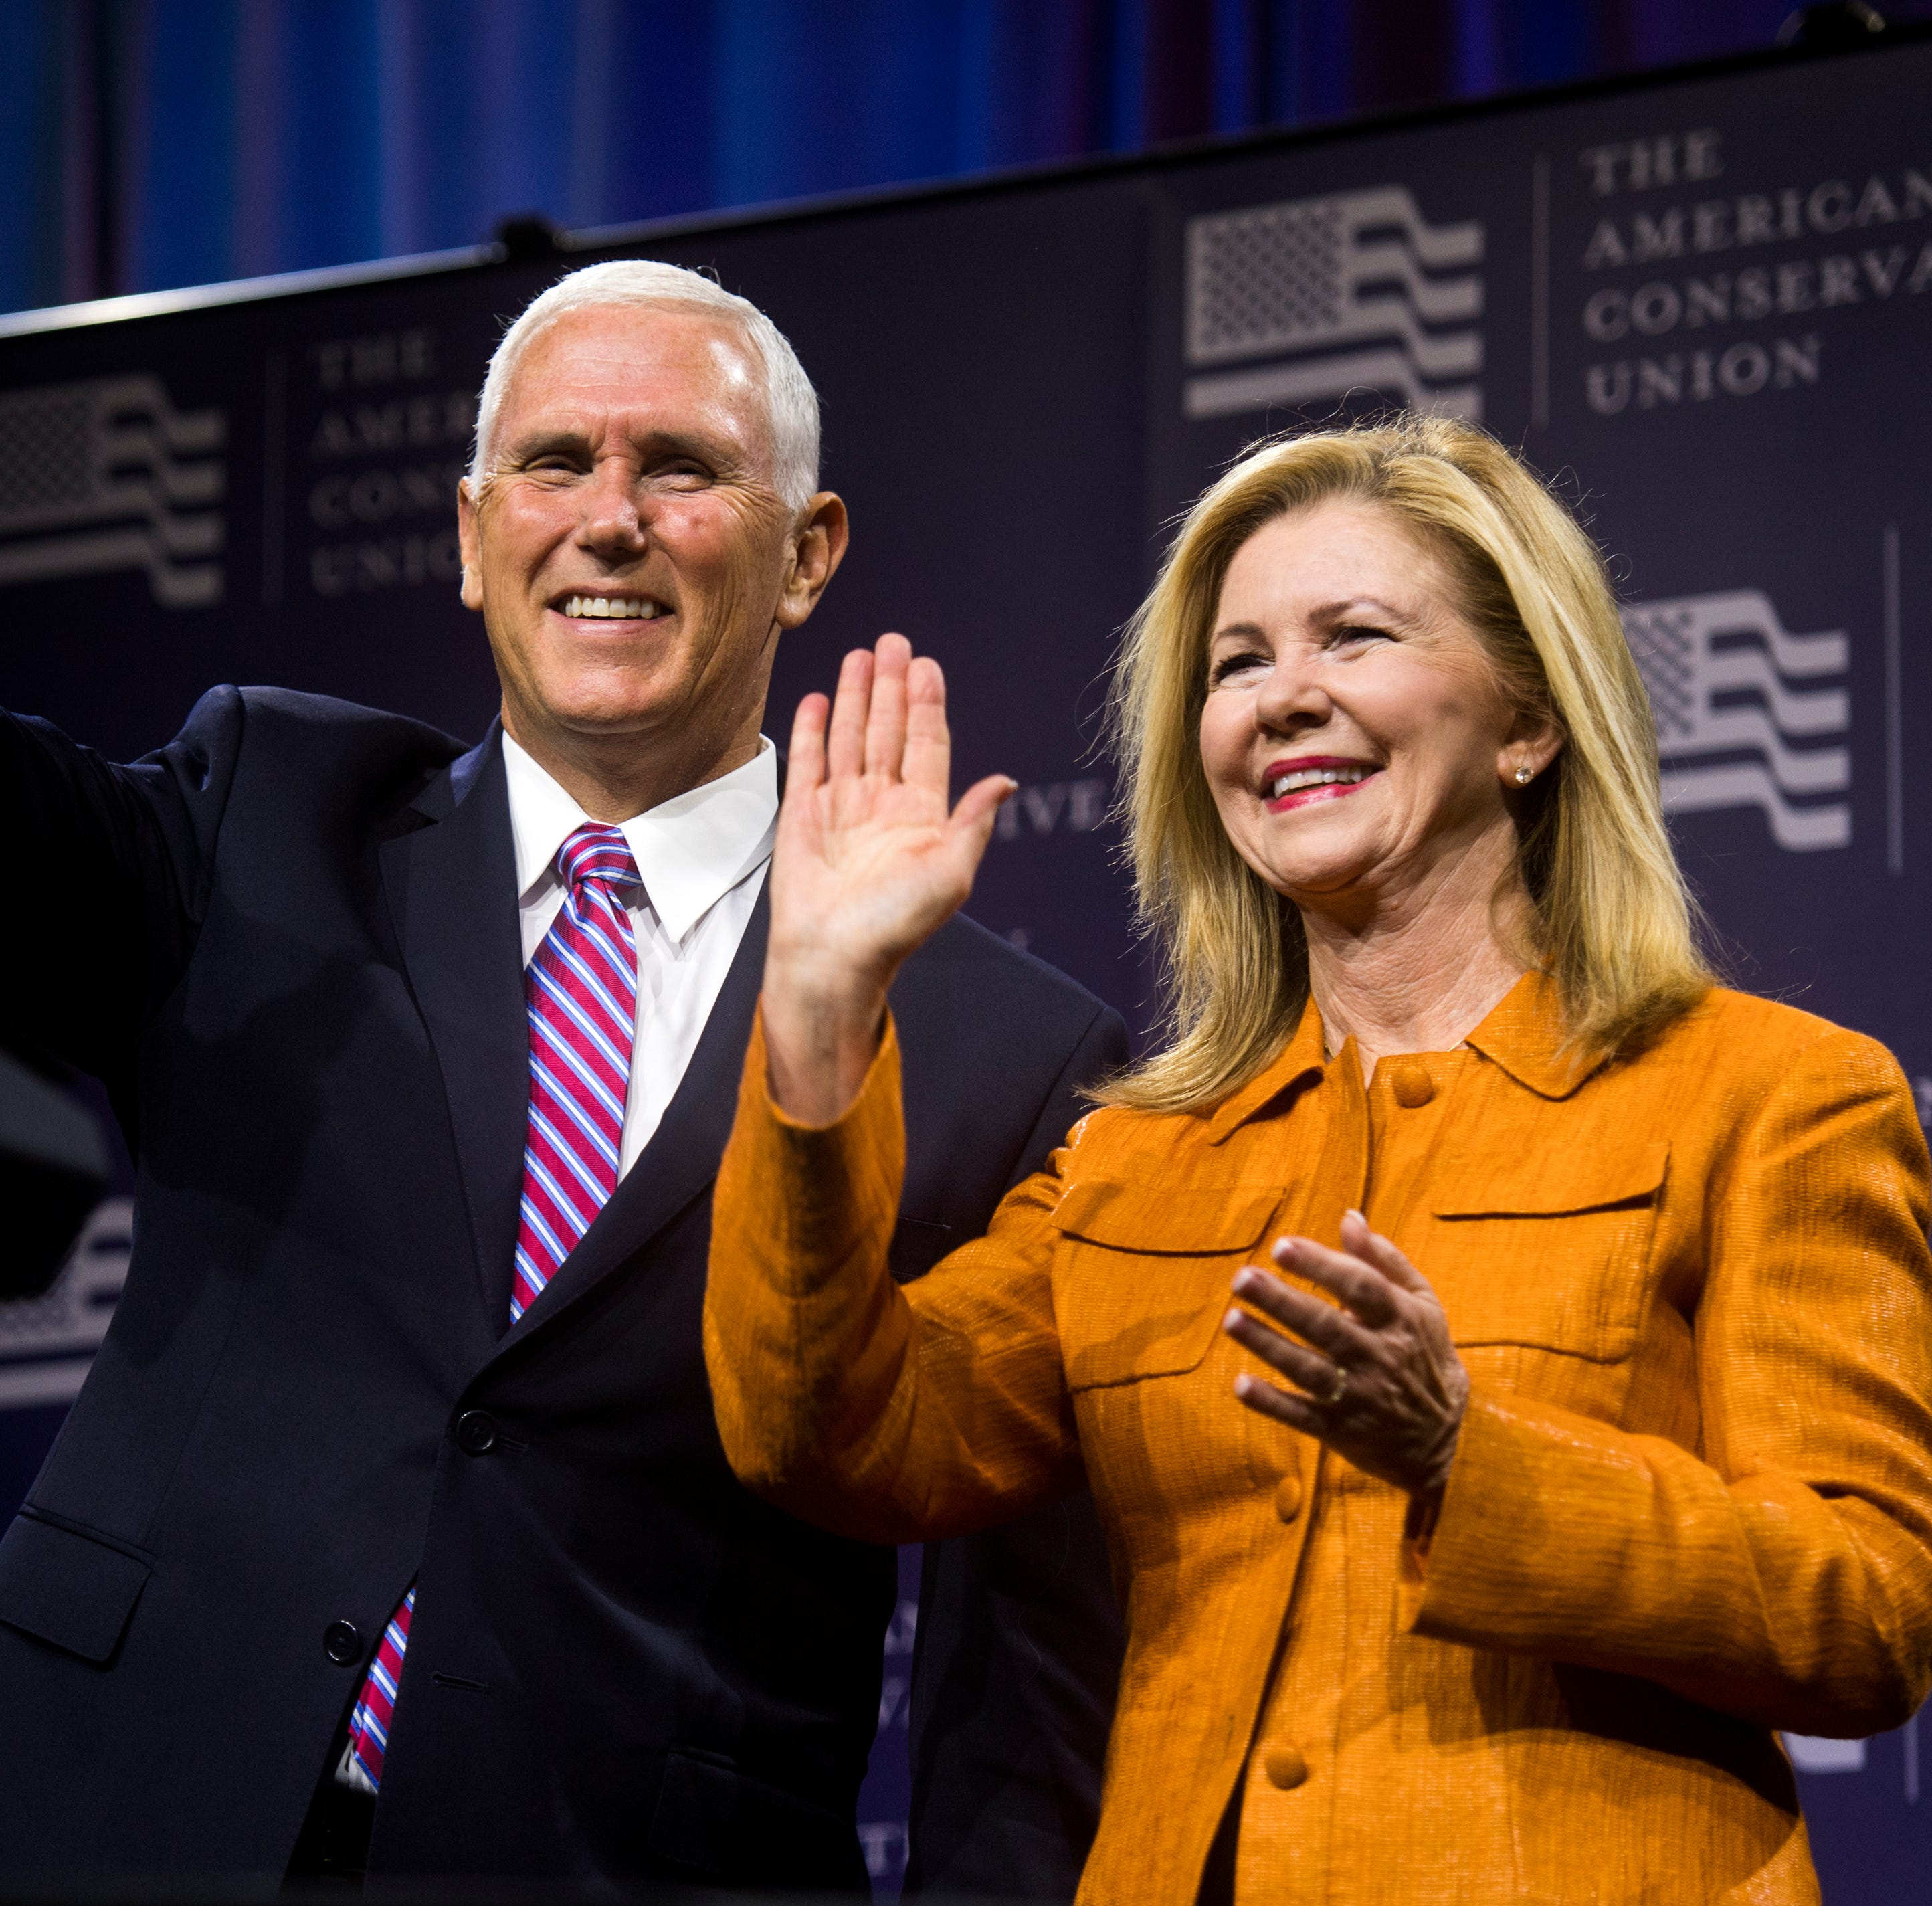 Vice President Pence, GOP leaders stump for Blackburn in Knoxville visit